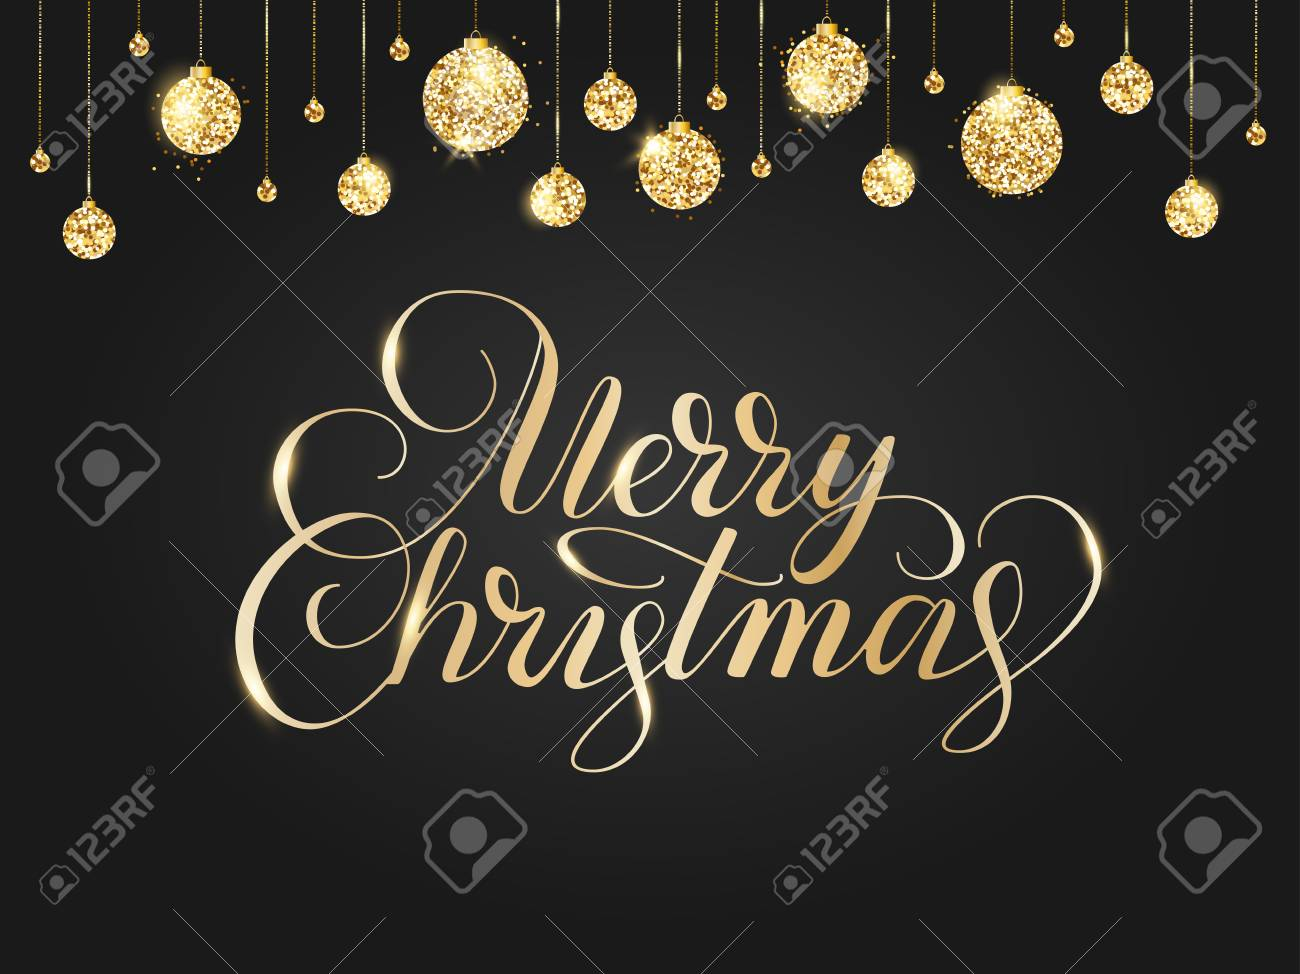 Merry Christmas Card With Lettering And Glitter Decoration. Black ...